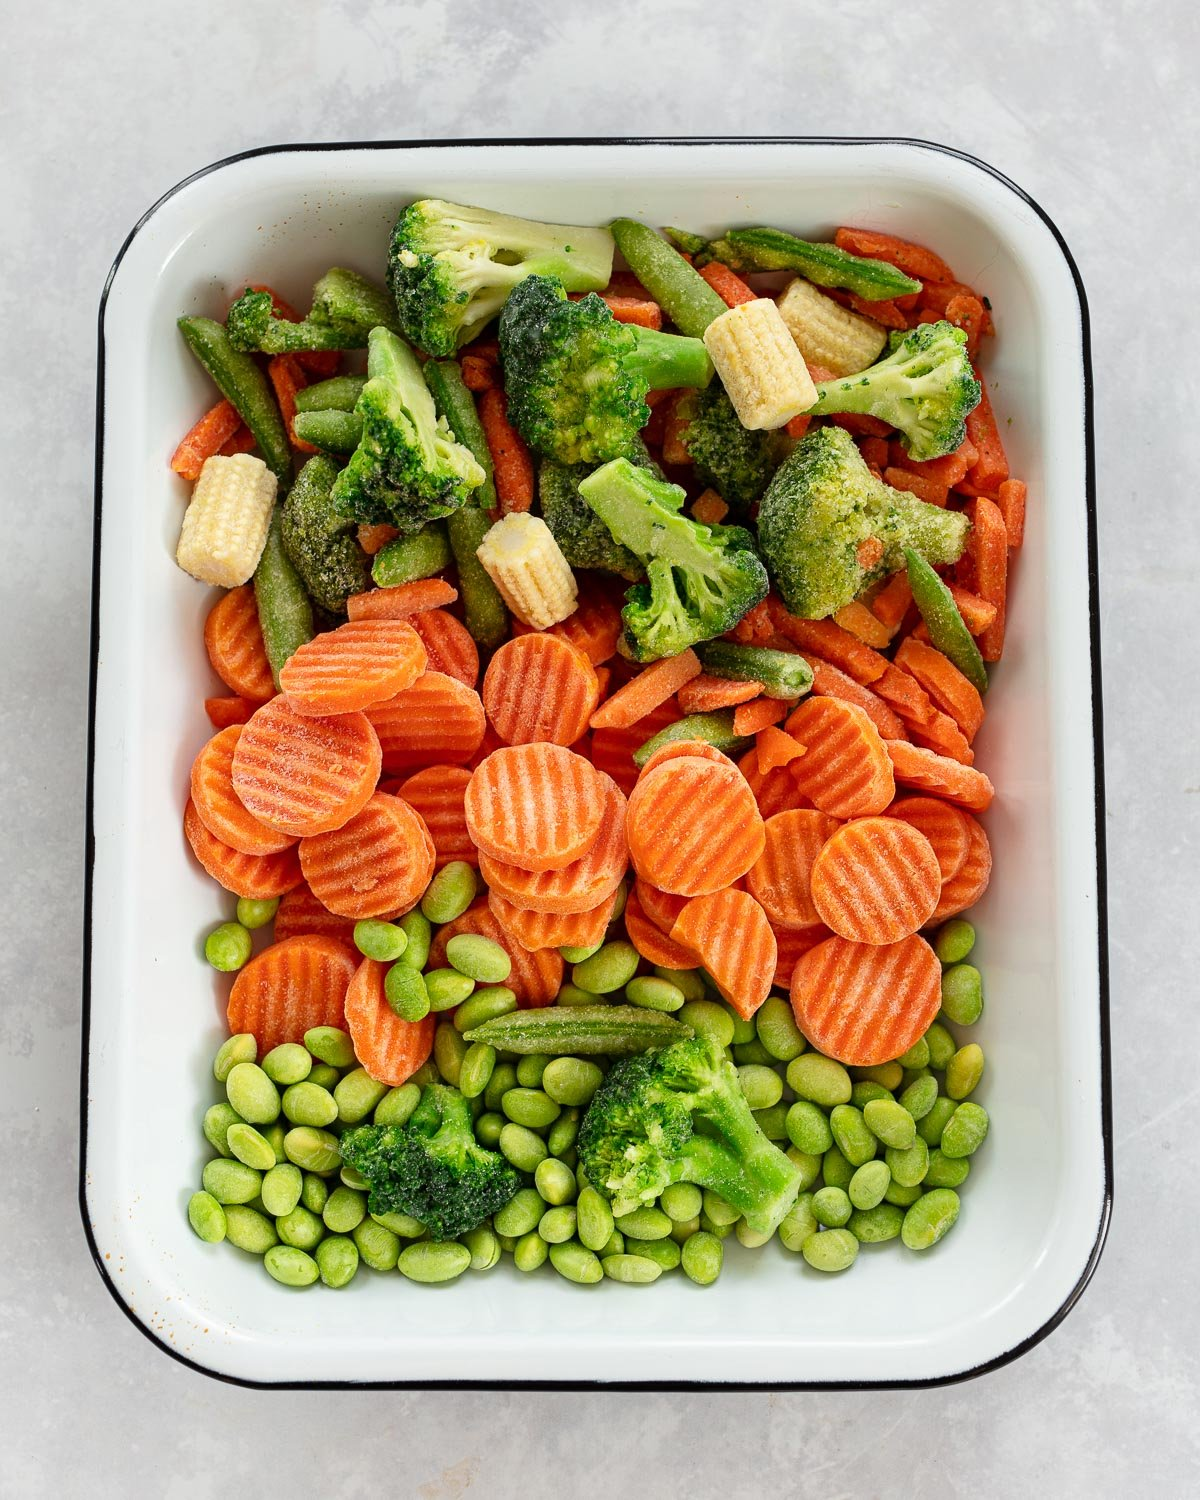 A white tray filled with a mixture of frozen broccoli florets, sliced carrots, baby corn, snap peas and edamame.